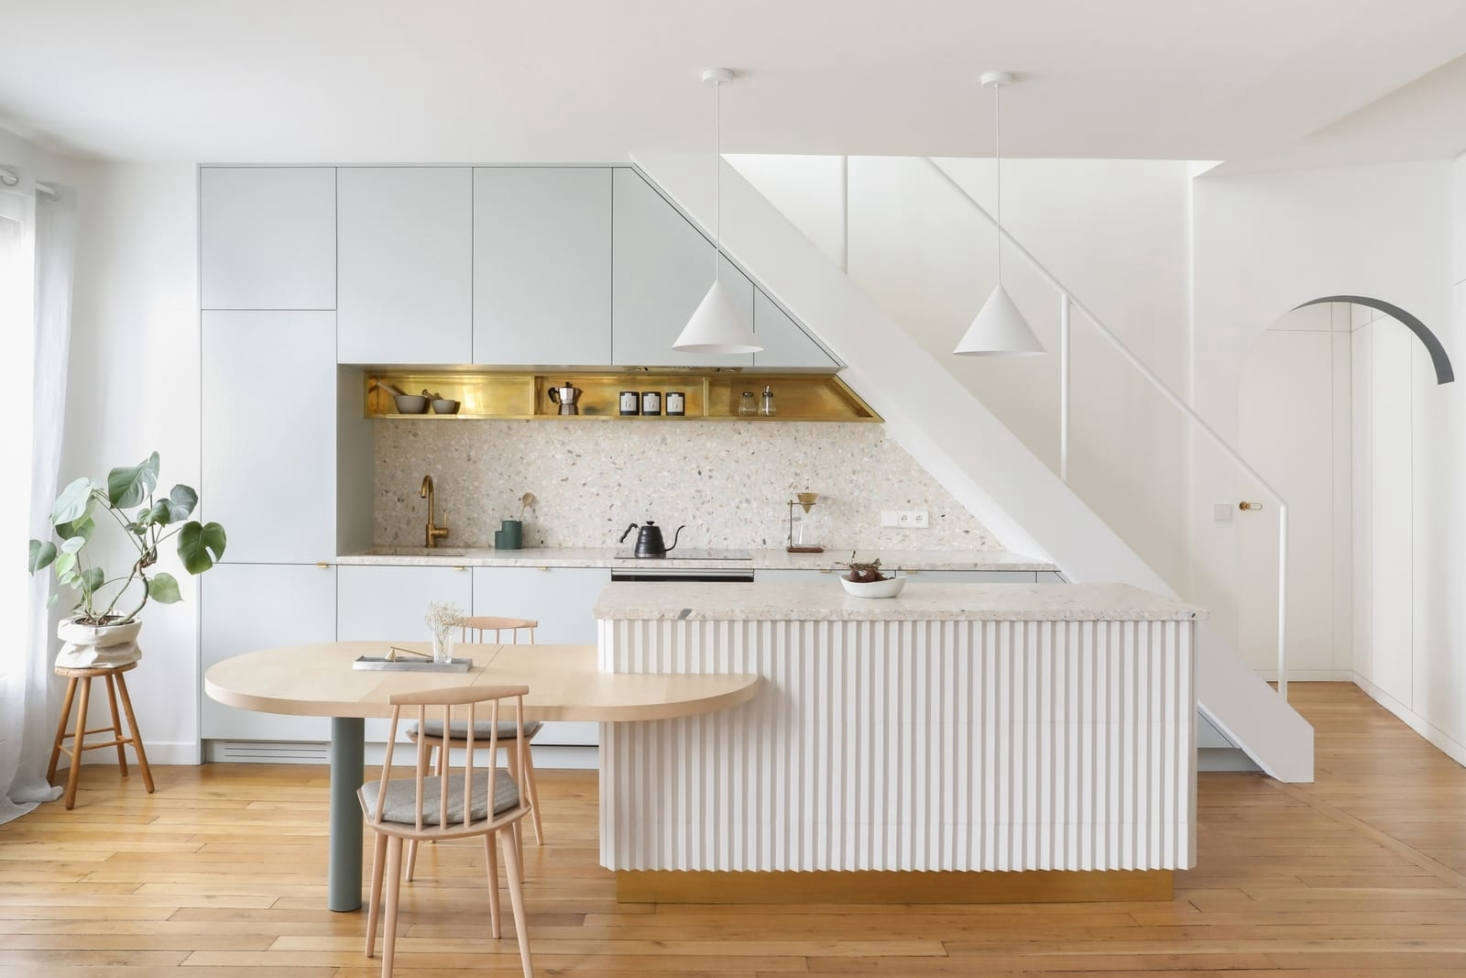 Seems like fluted details are a popular kitchen design trend these days. Margot shares her findings in Trend Alert: Kitchens with Fluted Detailing. Photograph courtesy of Heju Studio.